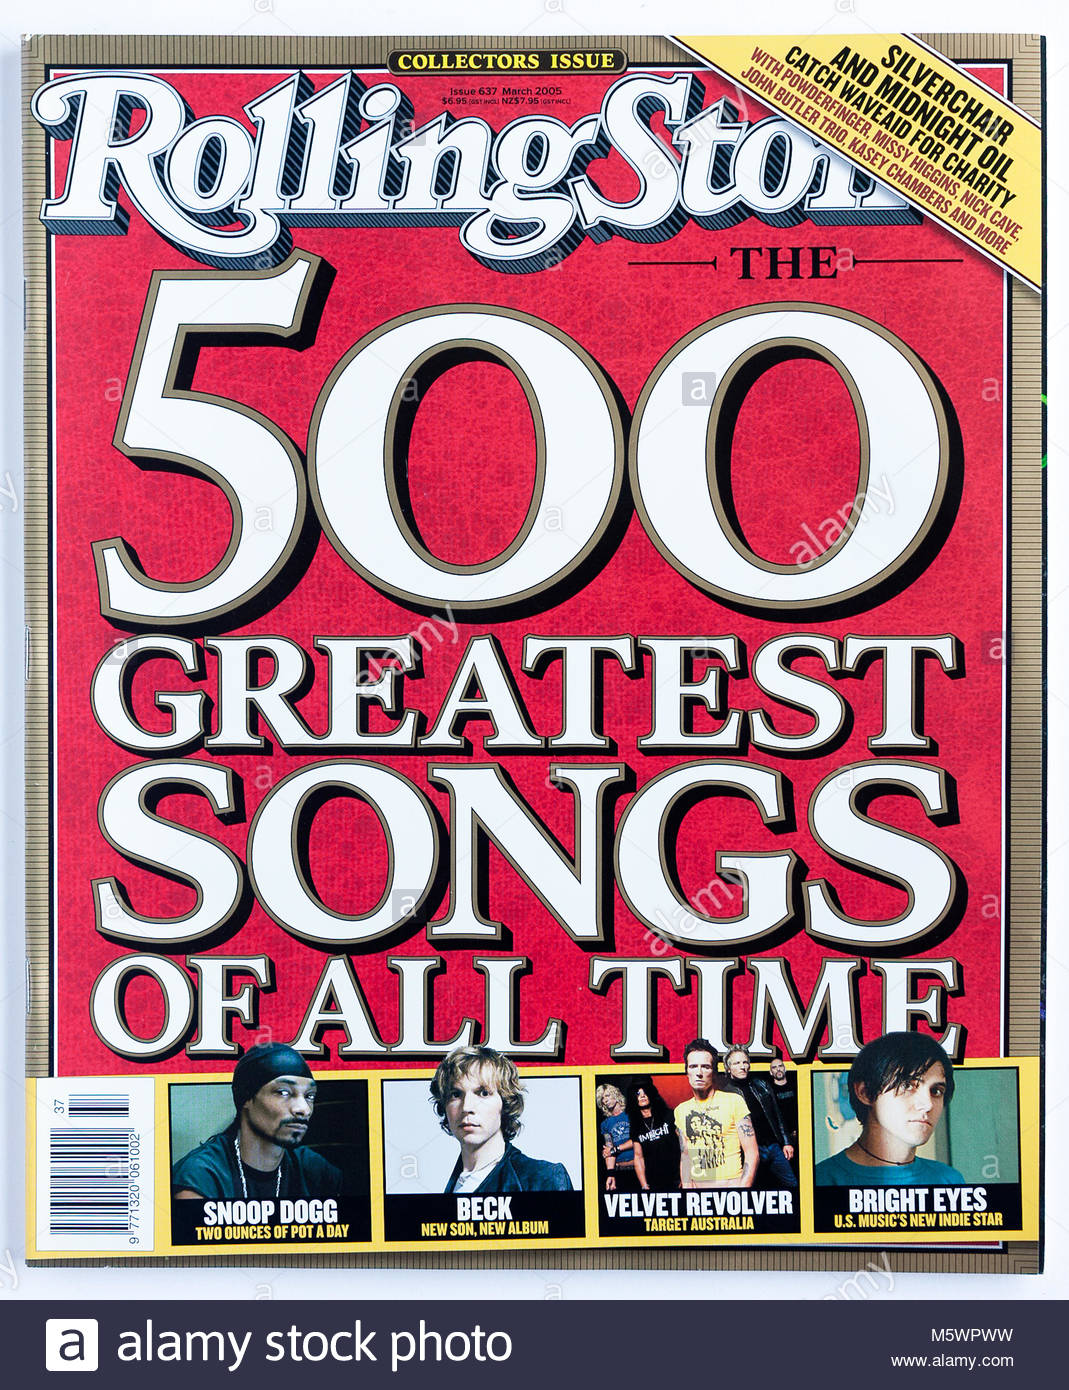 The cover of Rolling Stone magazine, issue 637, 500 Greatest Songs of All Time - Stock Image